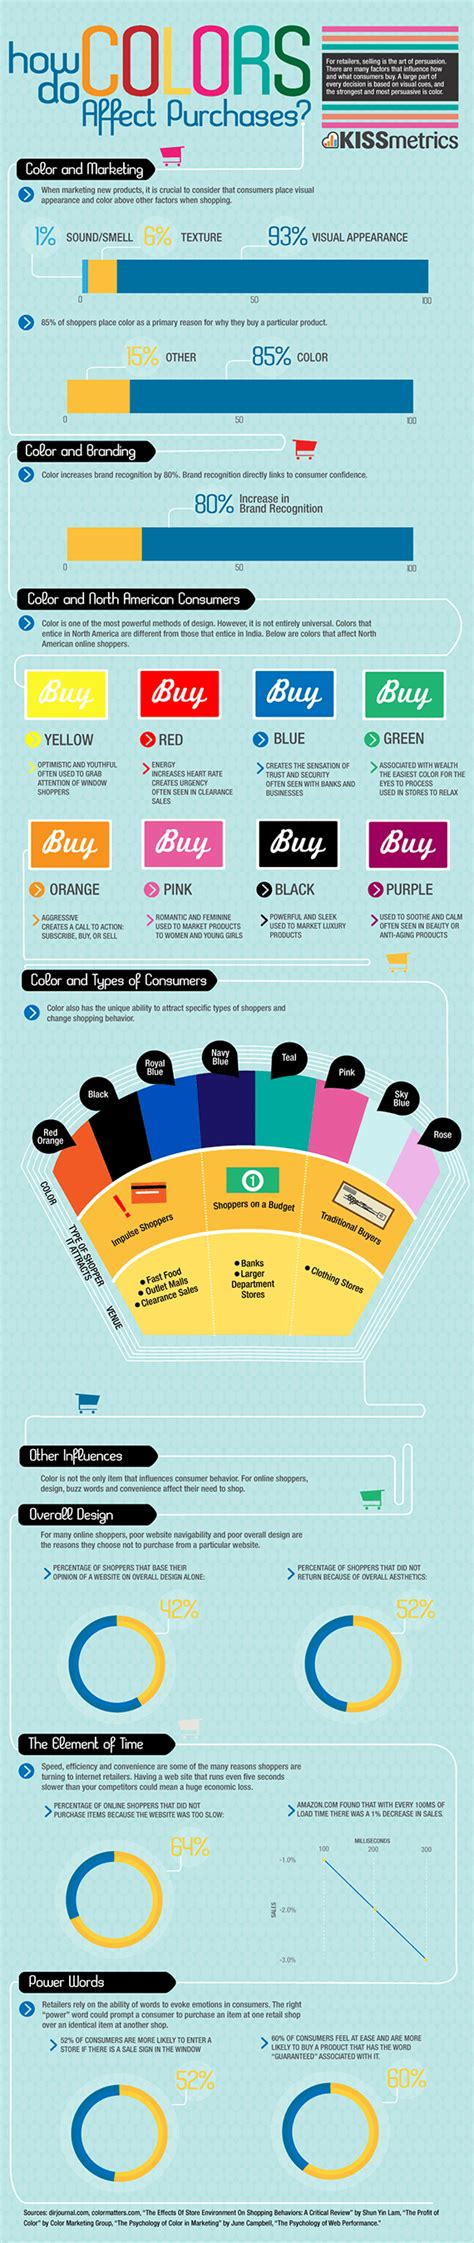 how do colors affect purchases amgrade how do colors affect purchases infographic